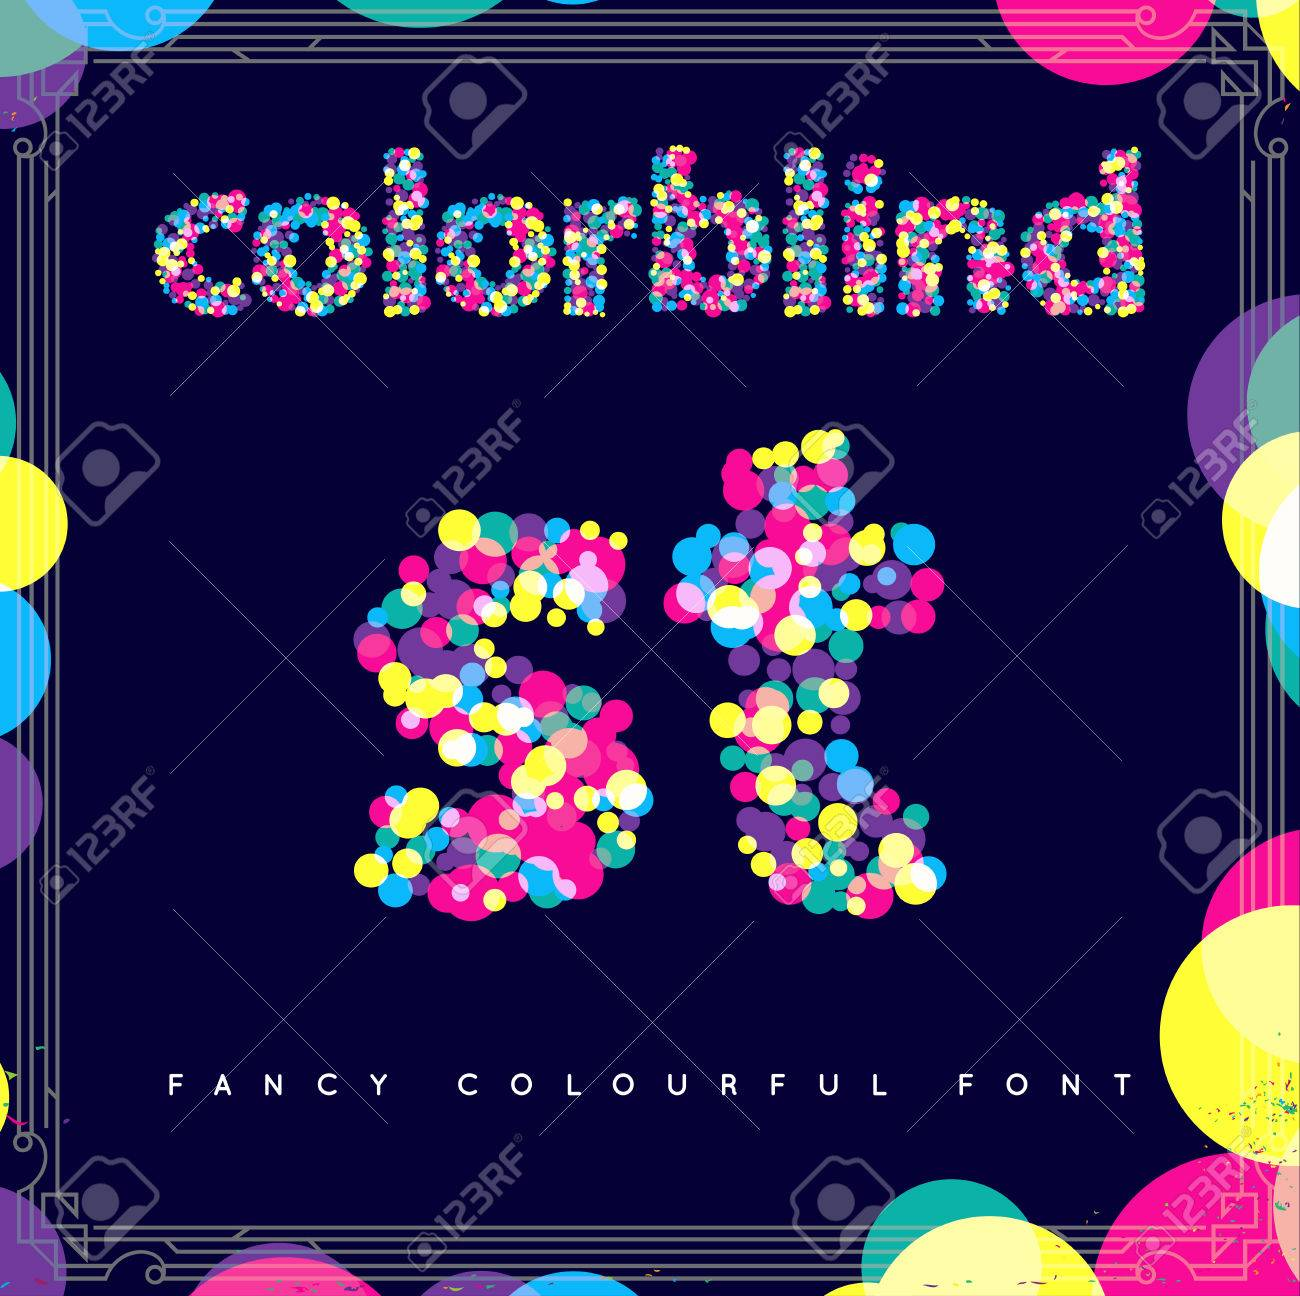 Set of Colorblind Style Font in Vector. Fresh trendy colors. - 63744545